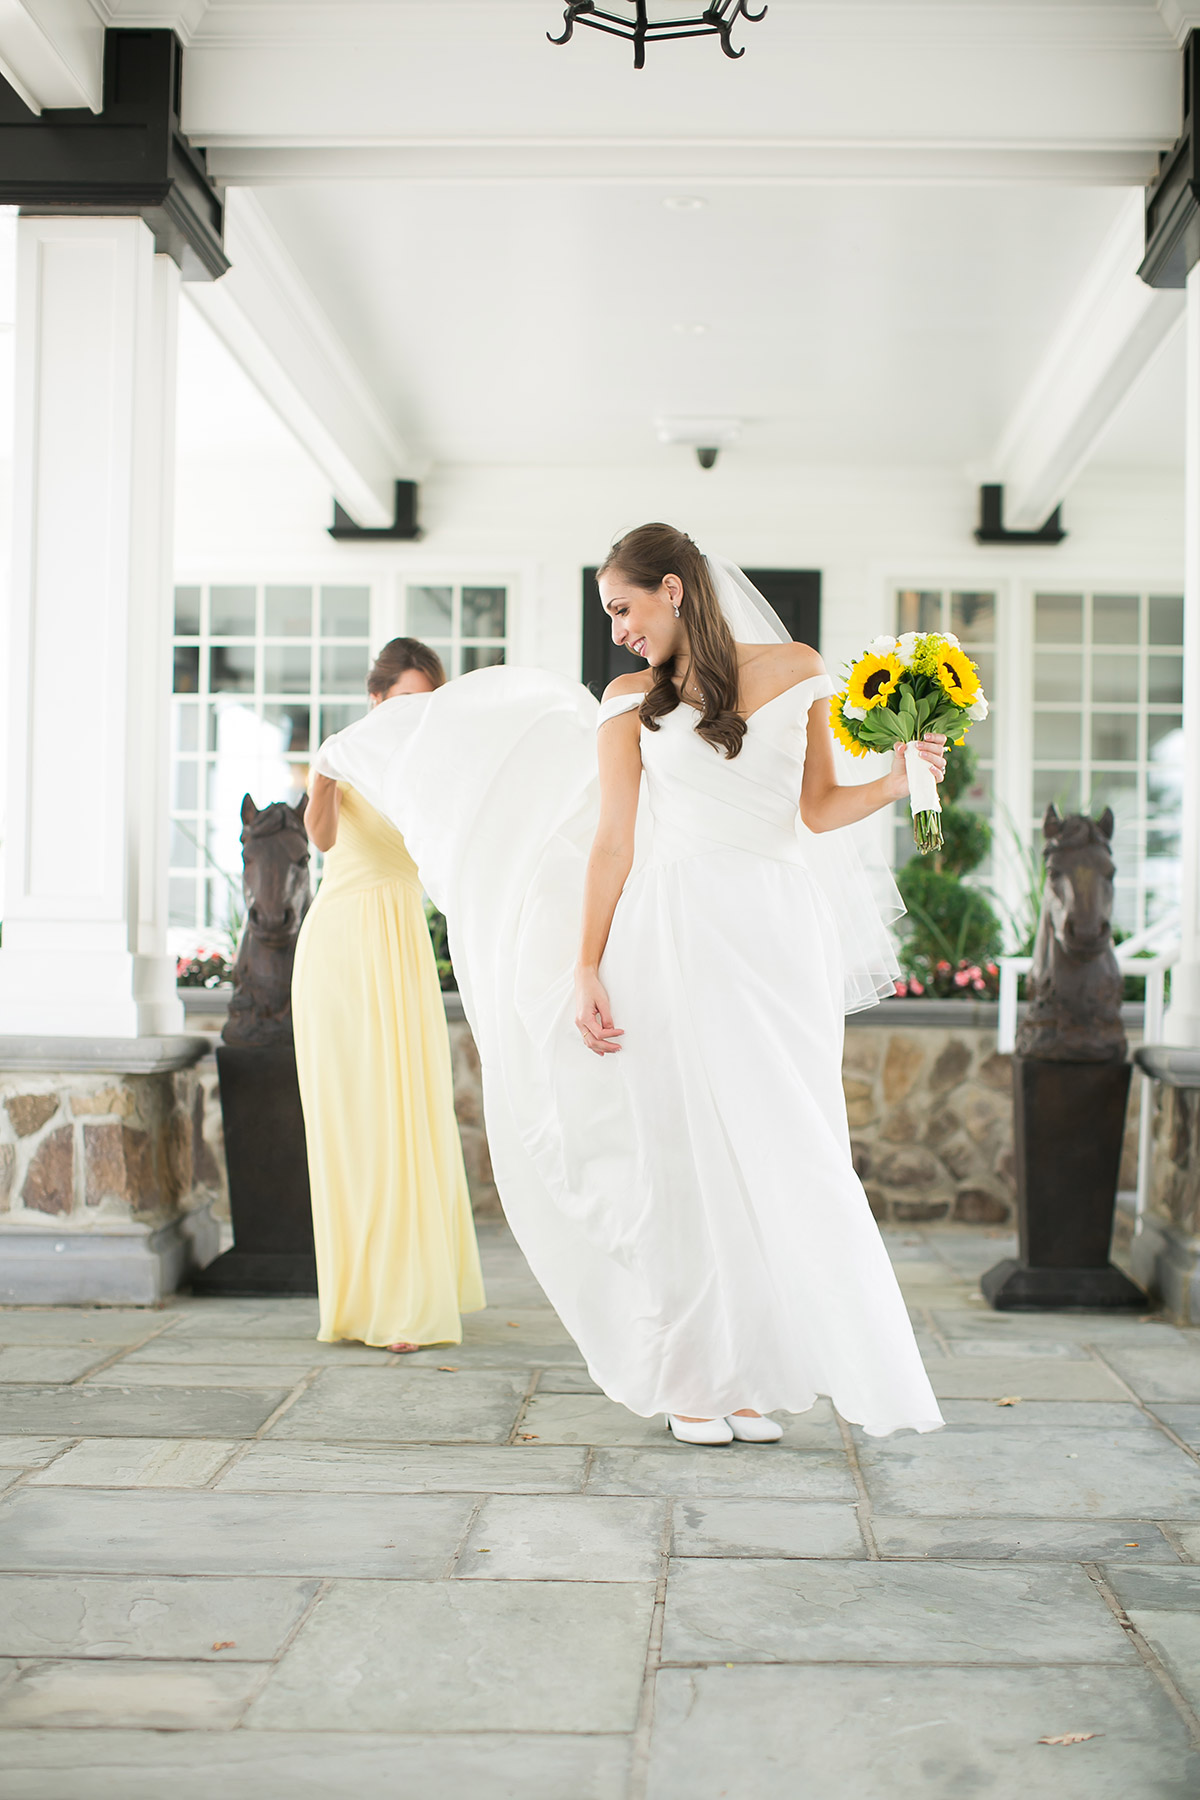 Amanda  Charlotte gown | Whitehouse Station, NJ | 2015  Reiner Photography